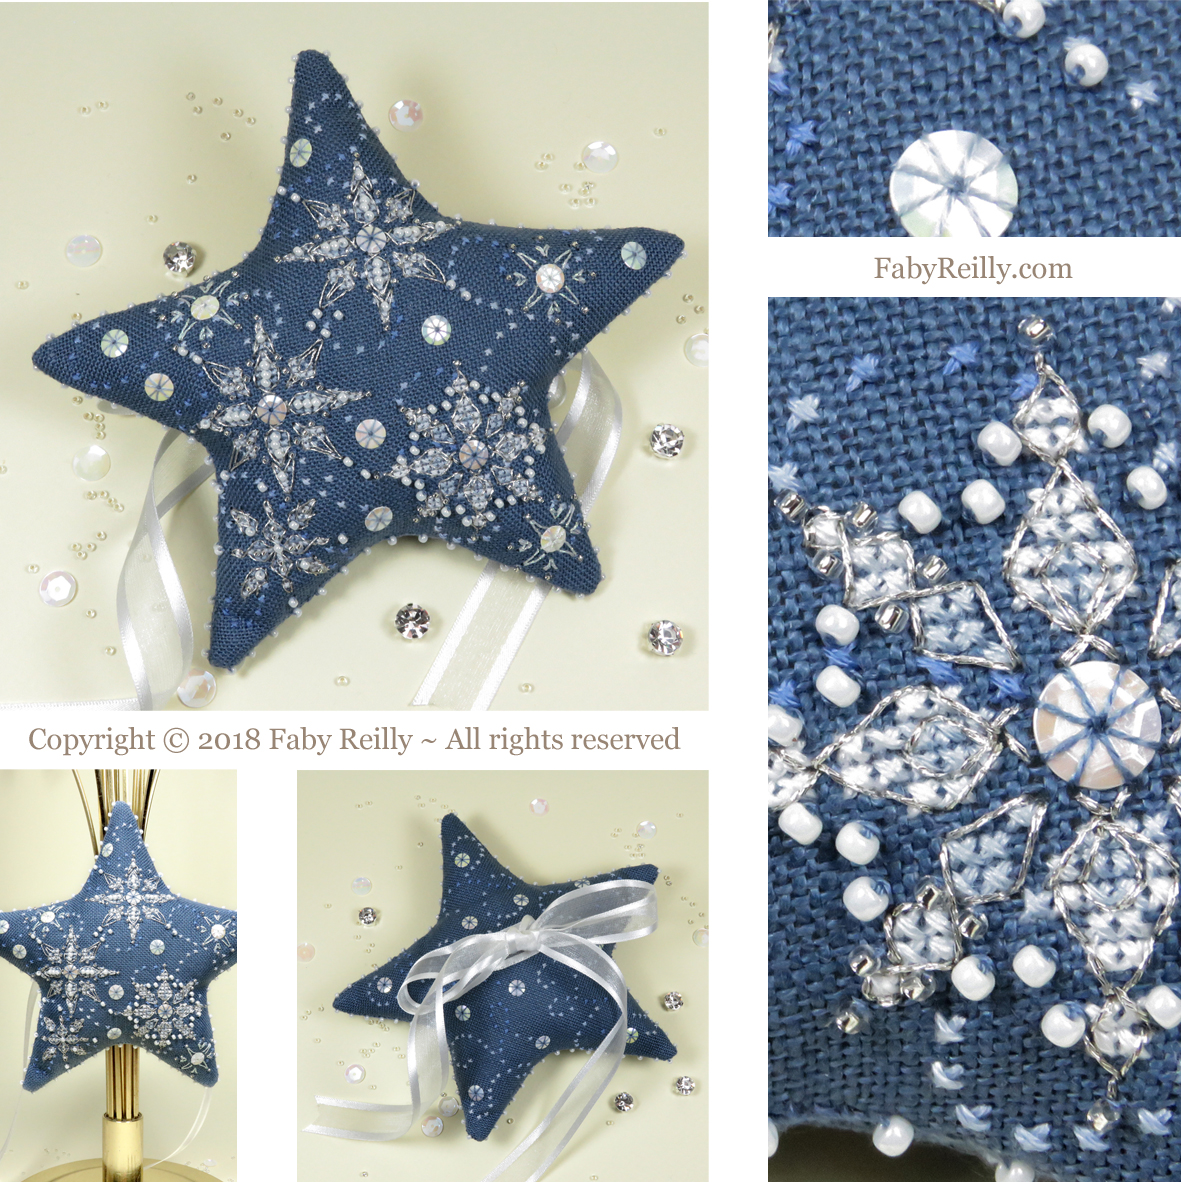 Etoile let it snow faby reilly designs